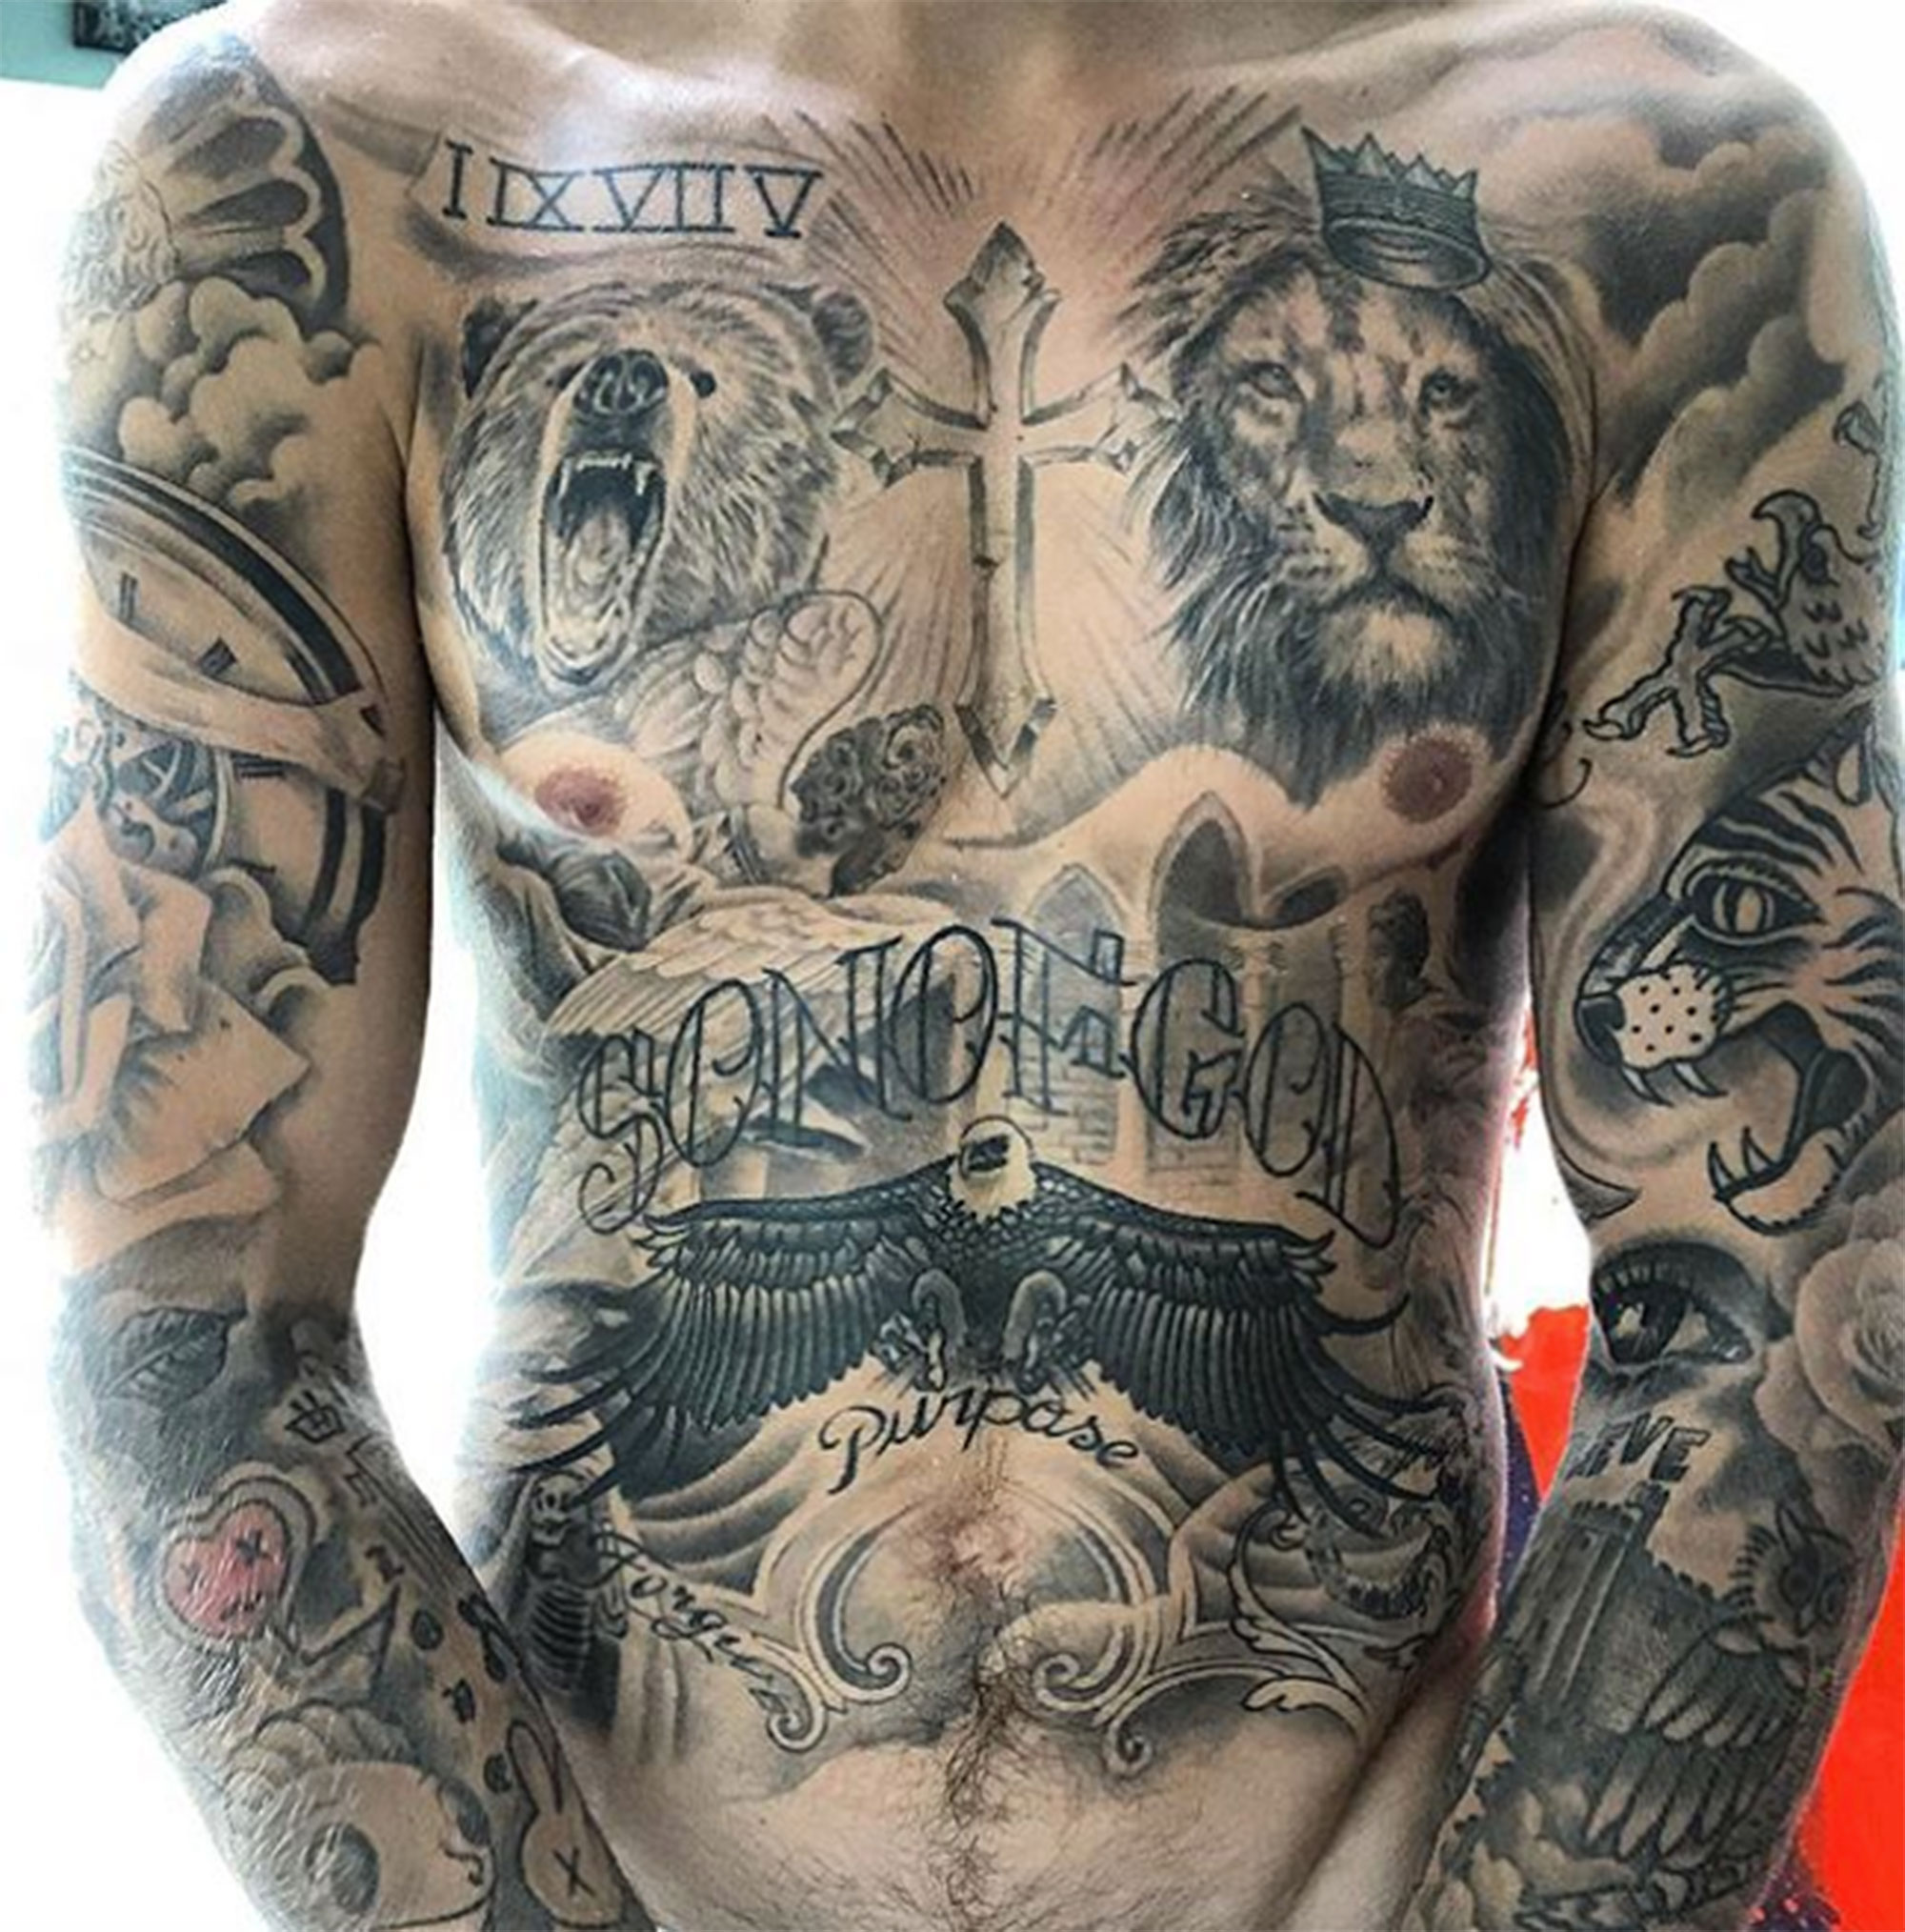 Justin Bieber's sexy chest and arm tattoos by Tattoo Artist Bang Bang